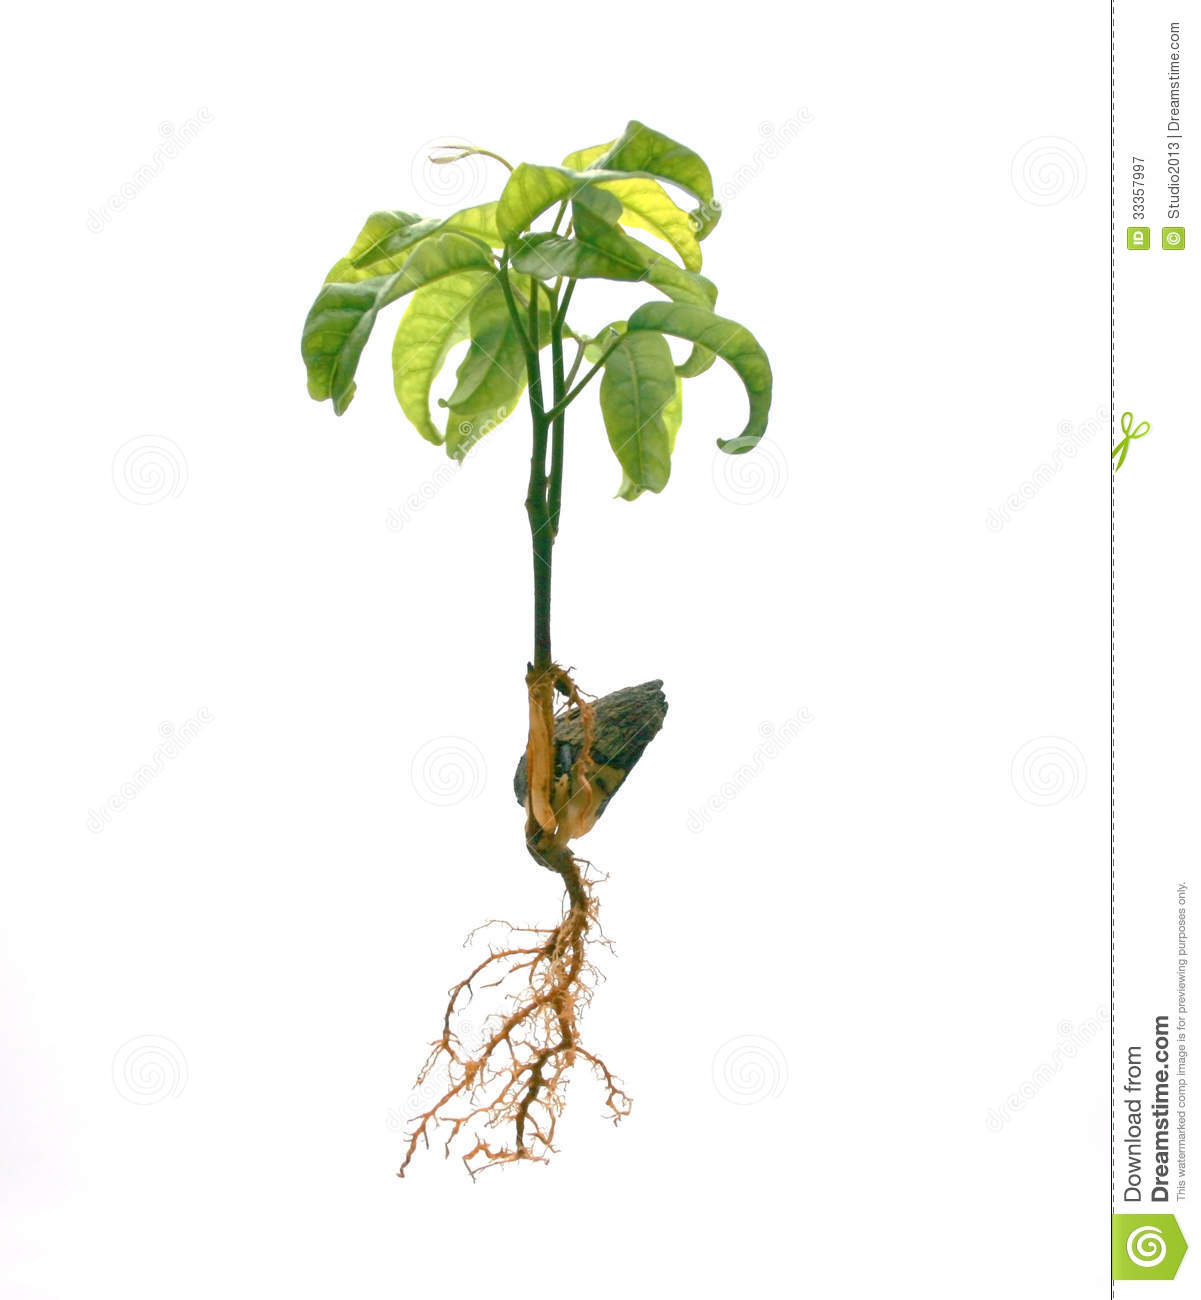 Roots stock image. Image of green, life, isolated, roots ...